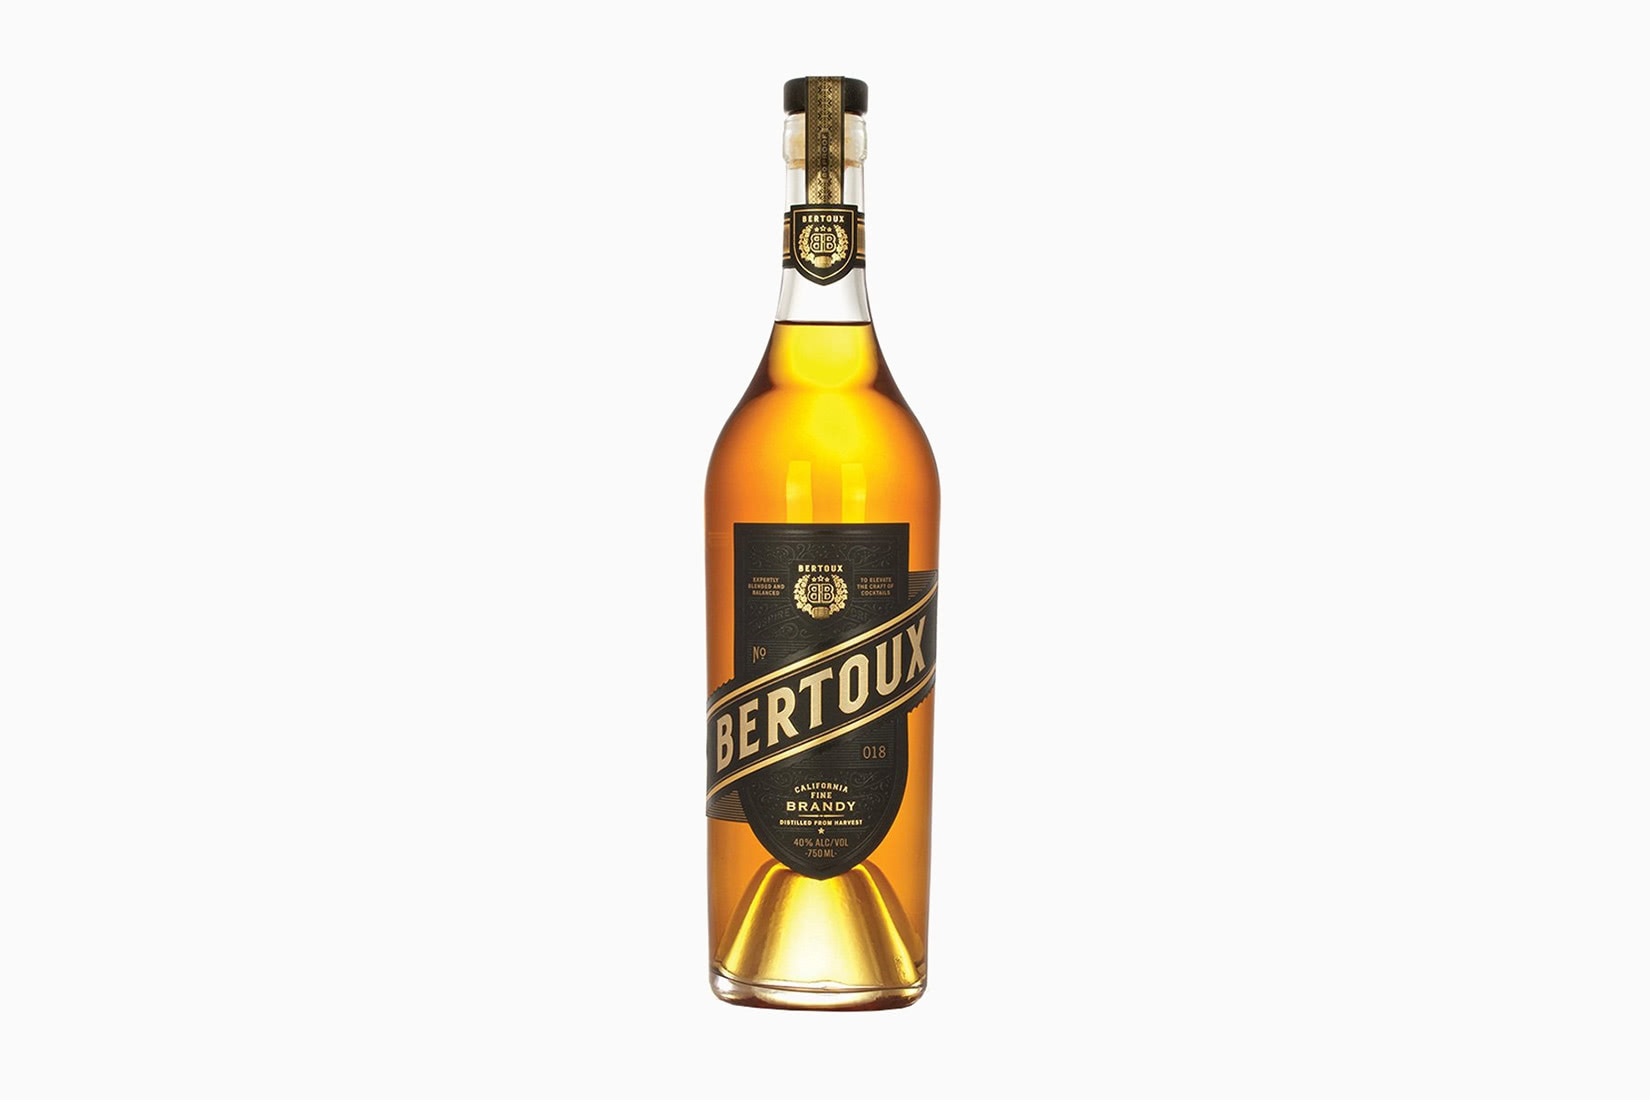 best brandy cognac brands bertoux - Luxe Digital